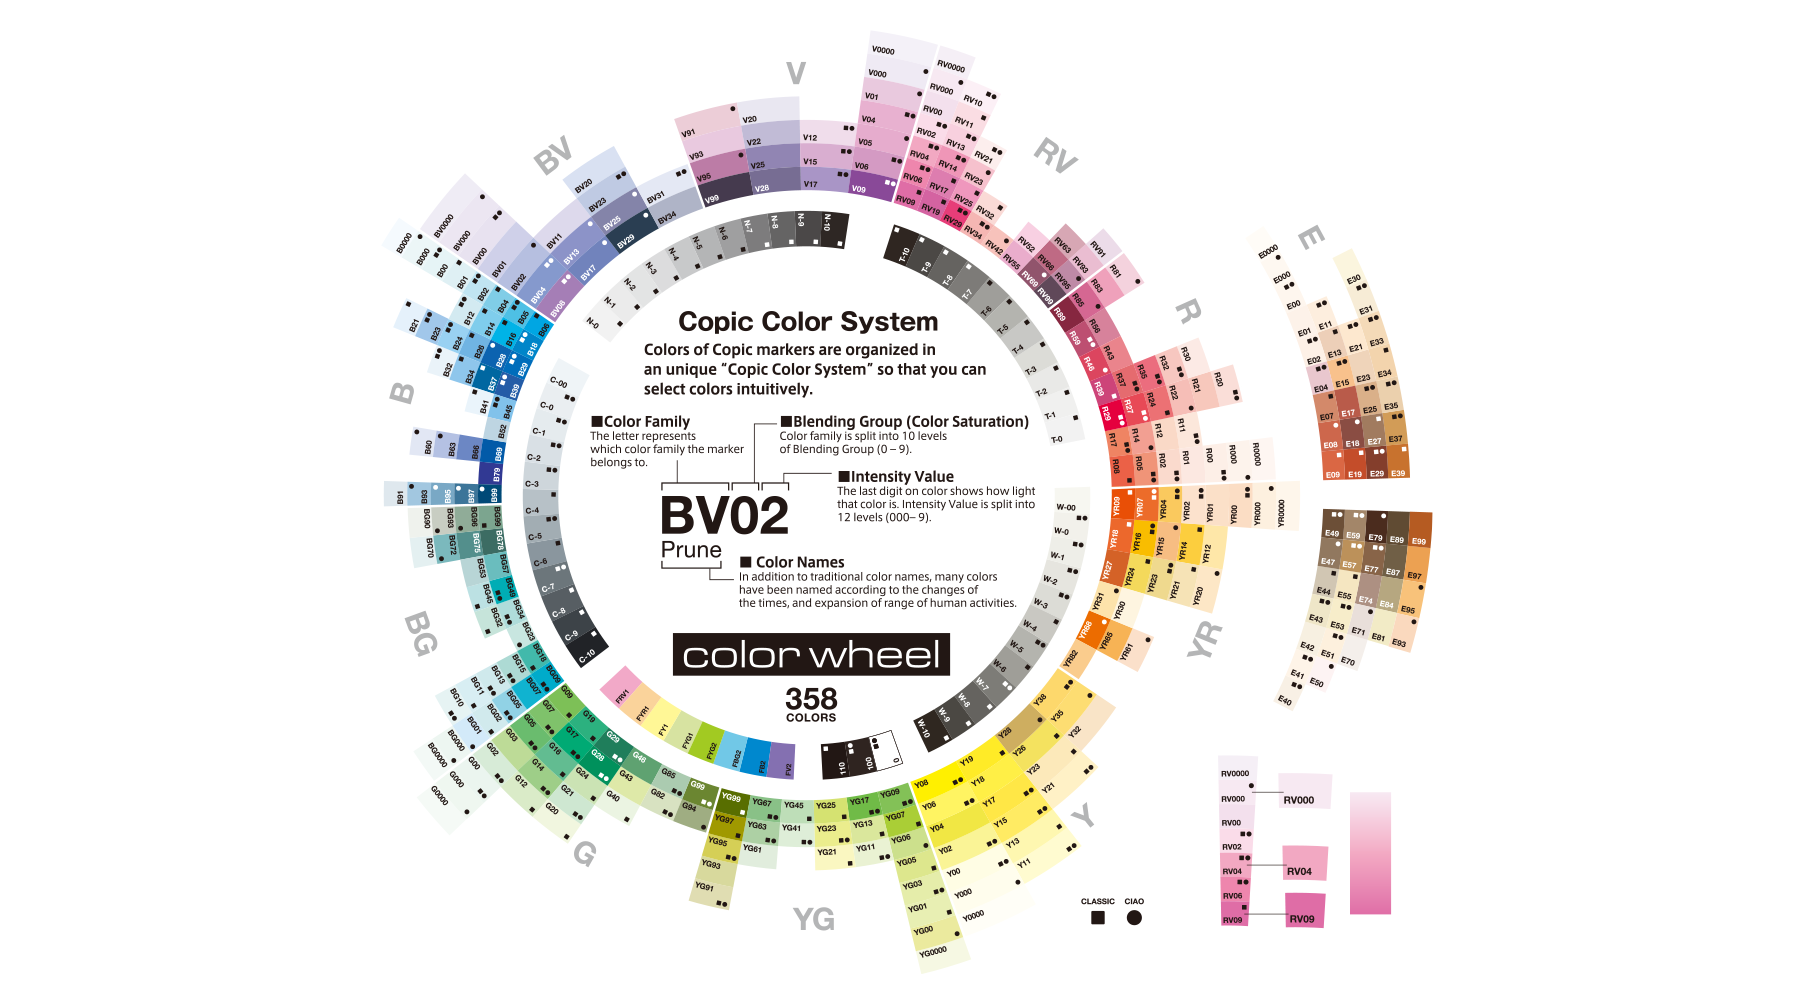 Copic Color System color wheel showing all 358 colors